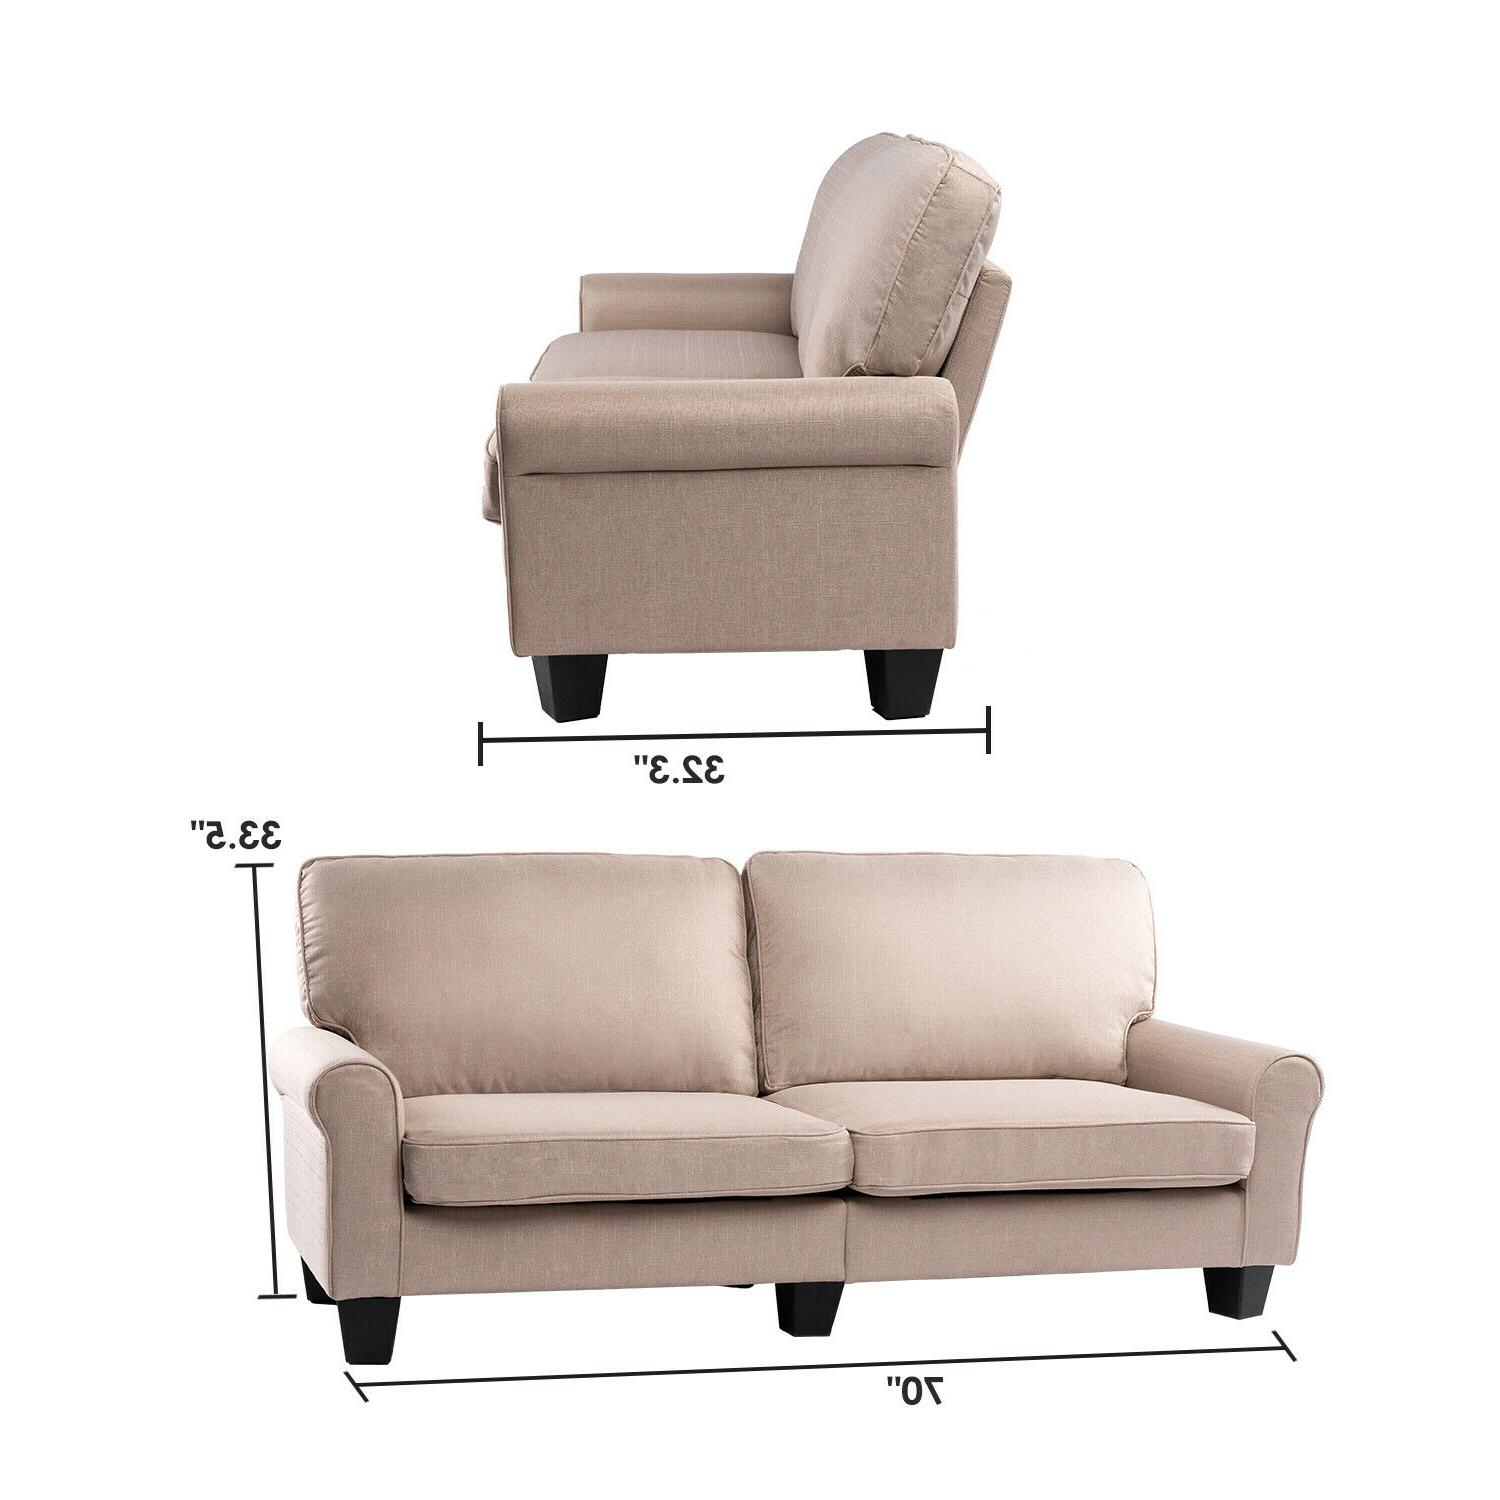 BAHOM Loveseat Sofa, Sofa Bed for Room, Bedroom